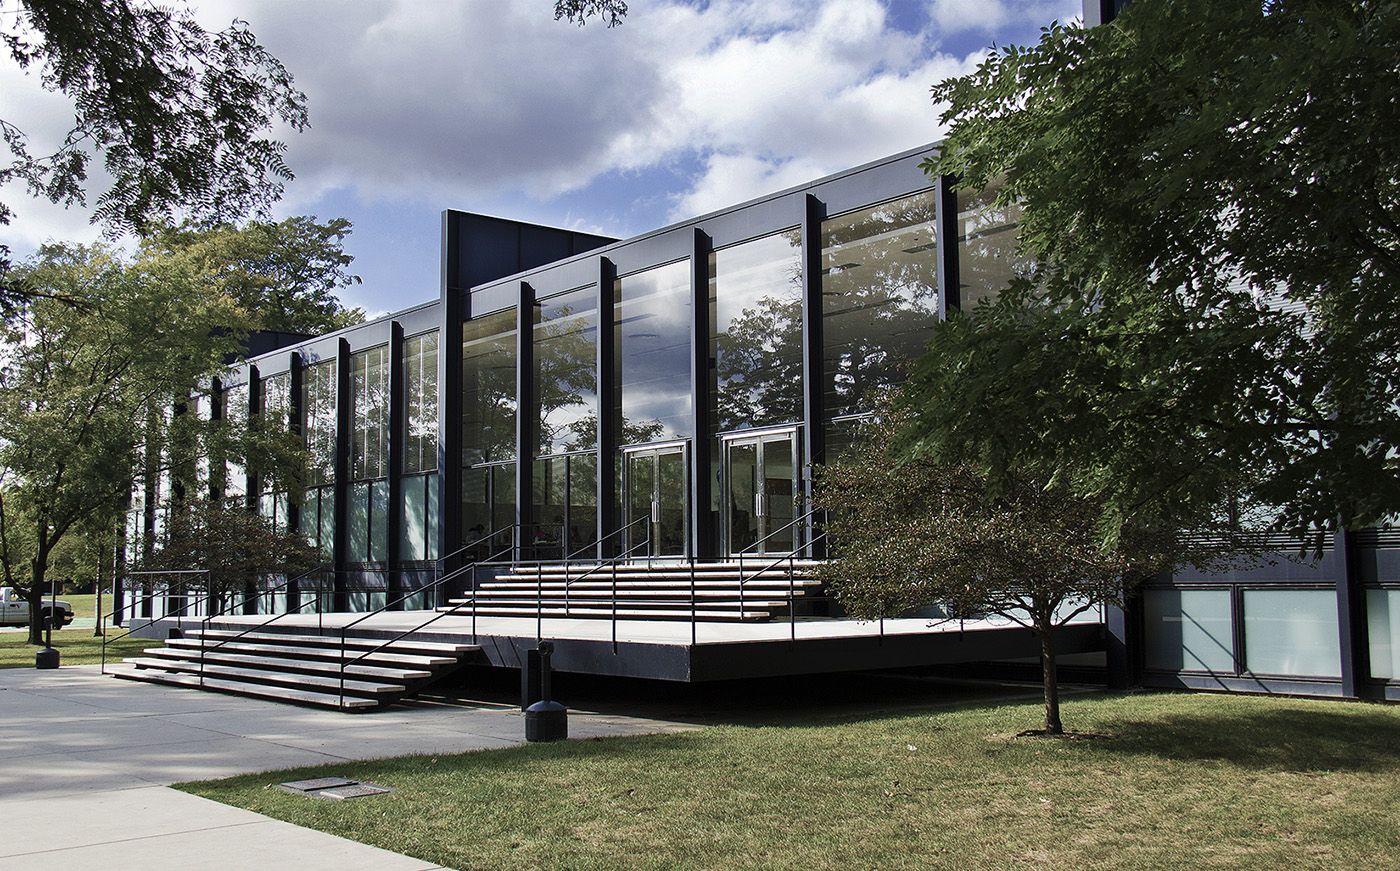 S.R. Crown Hall (1997) at IIT, designed by Ludwig Mies van der Rohe in the International Style